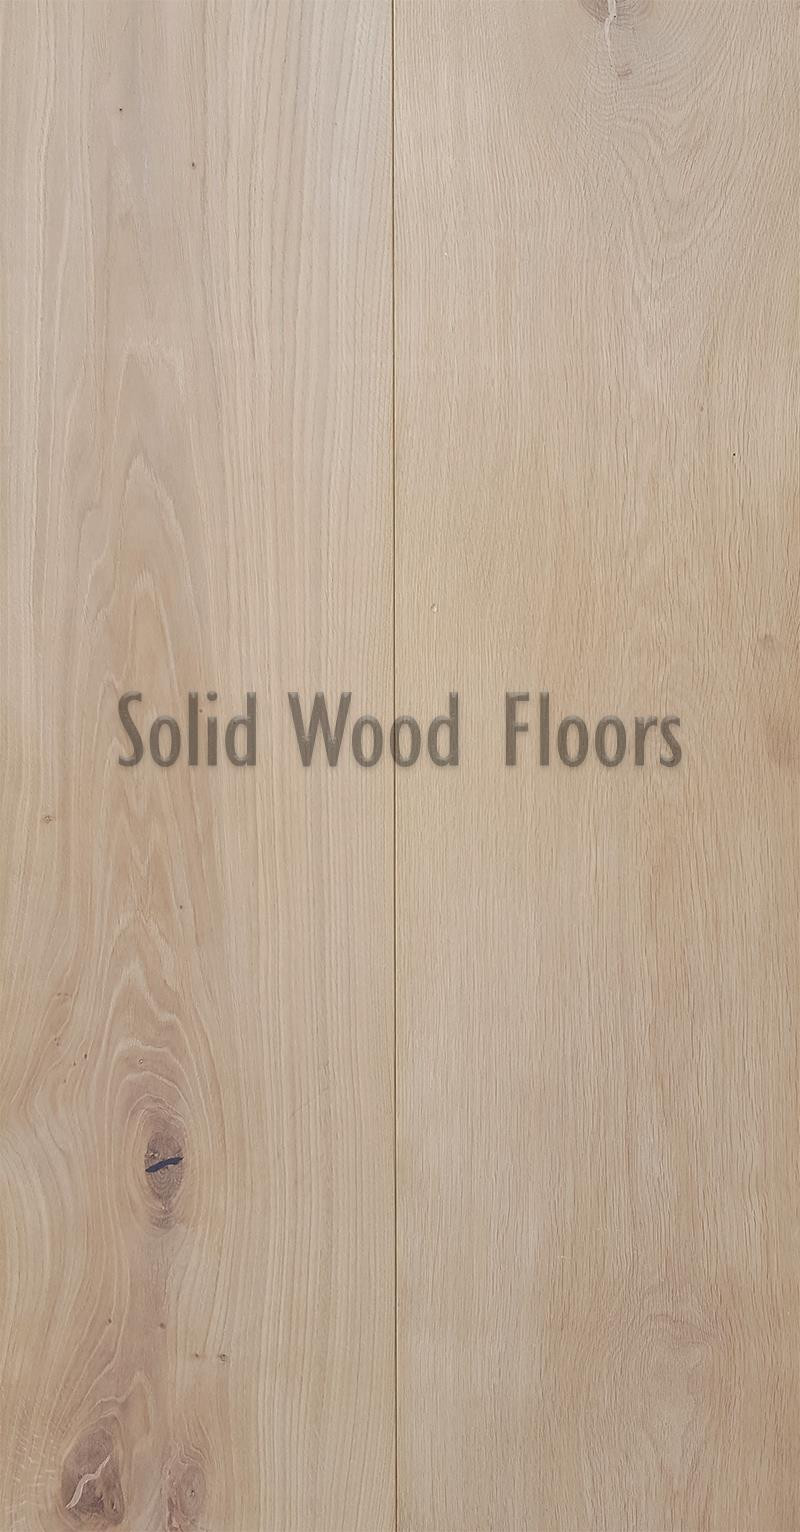 hardwood flooring london ontario of fumed oak engineered herringbone parquet flooring ebay regarding unfinished oak 240mm wide engineered wood flooring